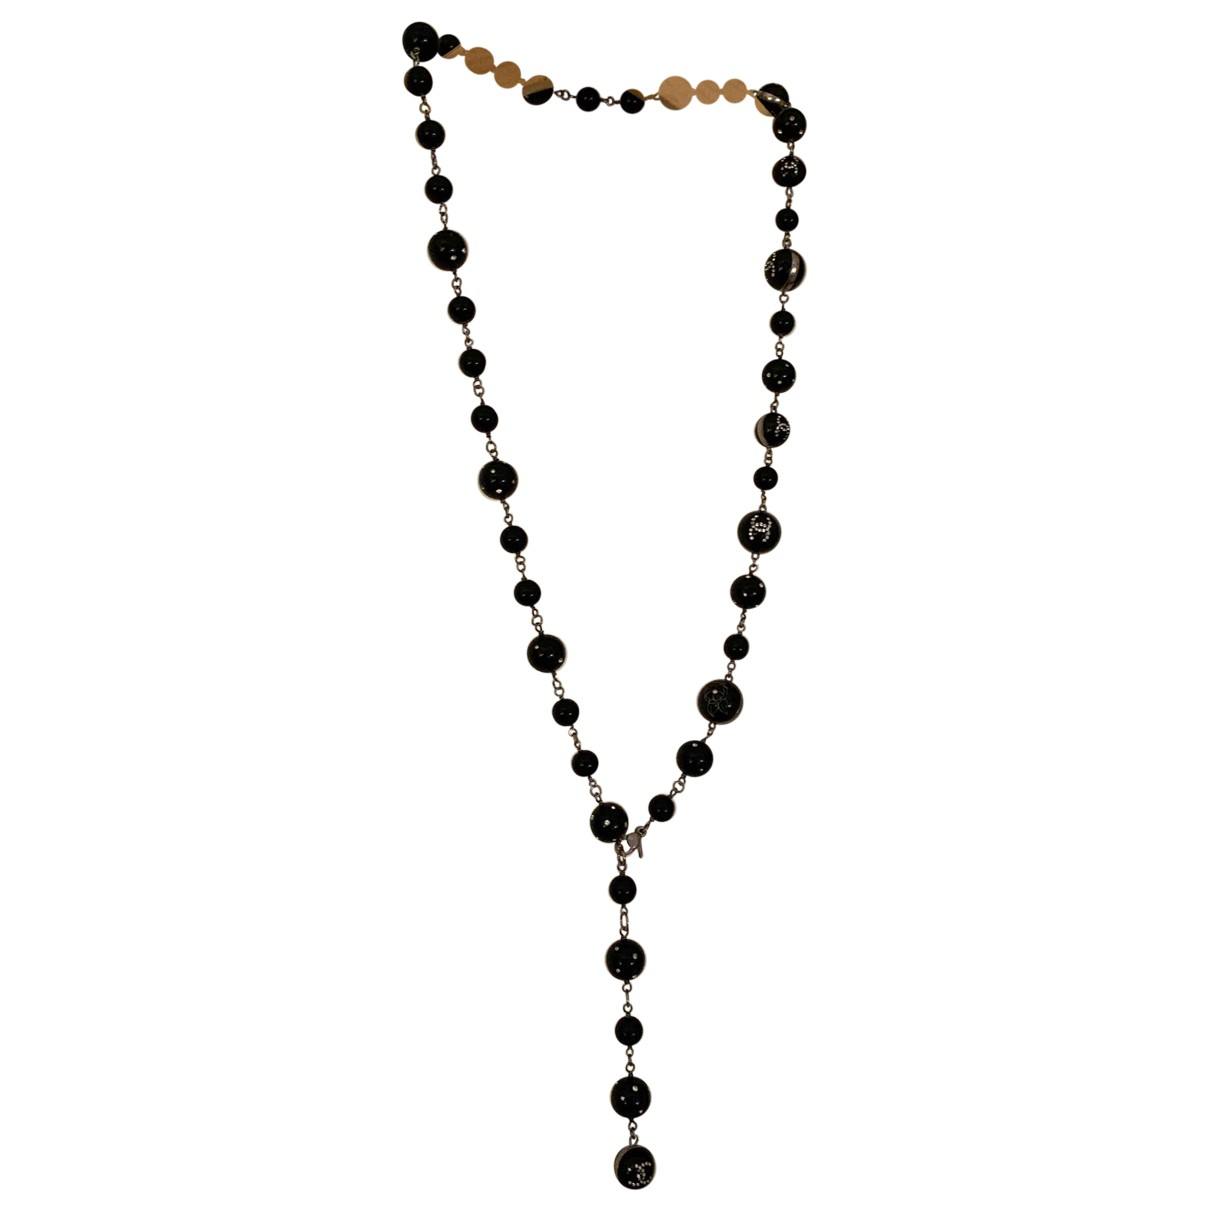 Chanel \N Black Pearls Long necklace for Women S International